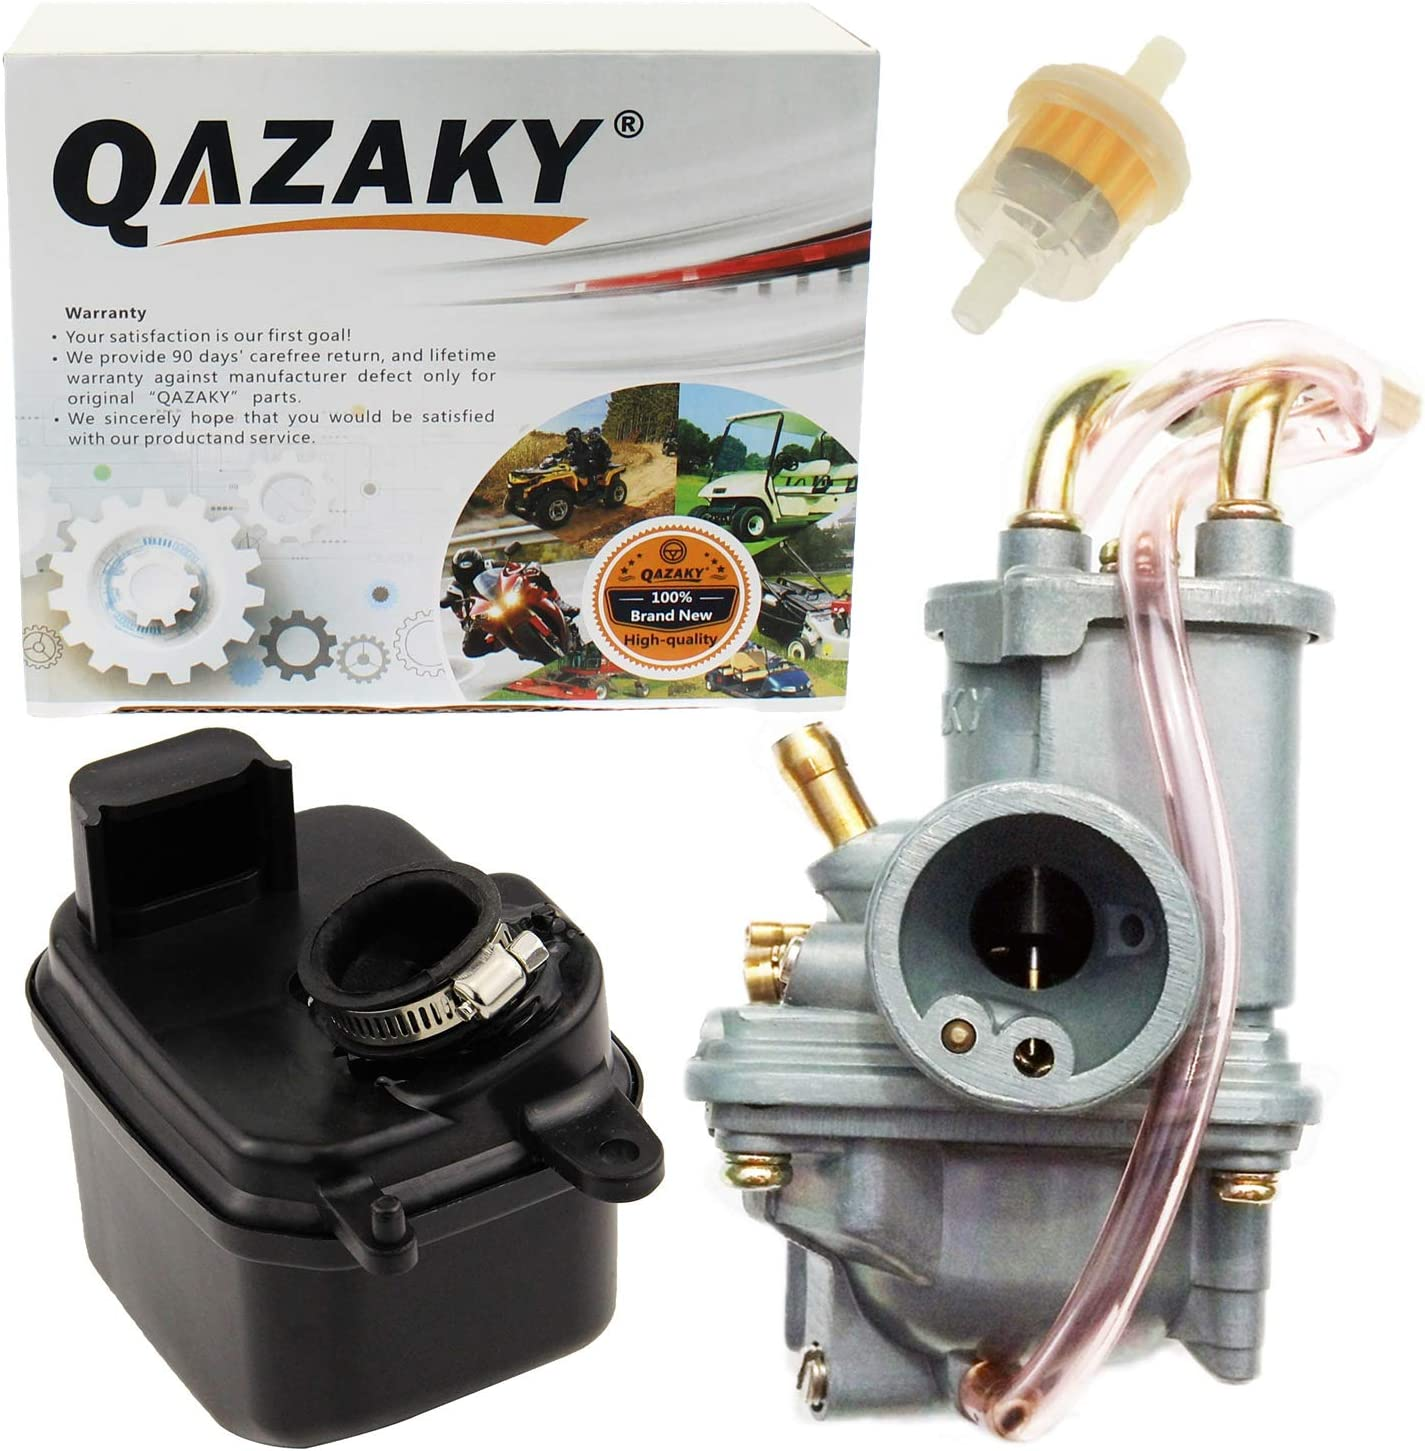 QAZAKY Air Filter Cleaner Box Housing Assembly Replacement for Yamaha PW50 PY50 G50T Peewee PW 50 Y-Zinger Pit Bike Motorcycle